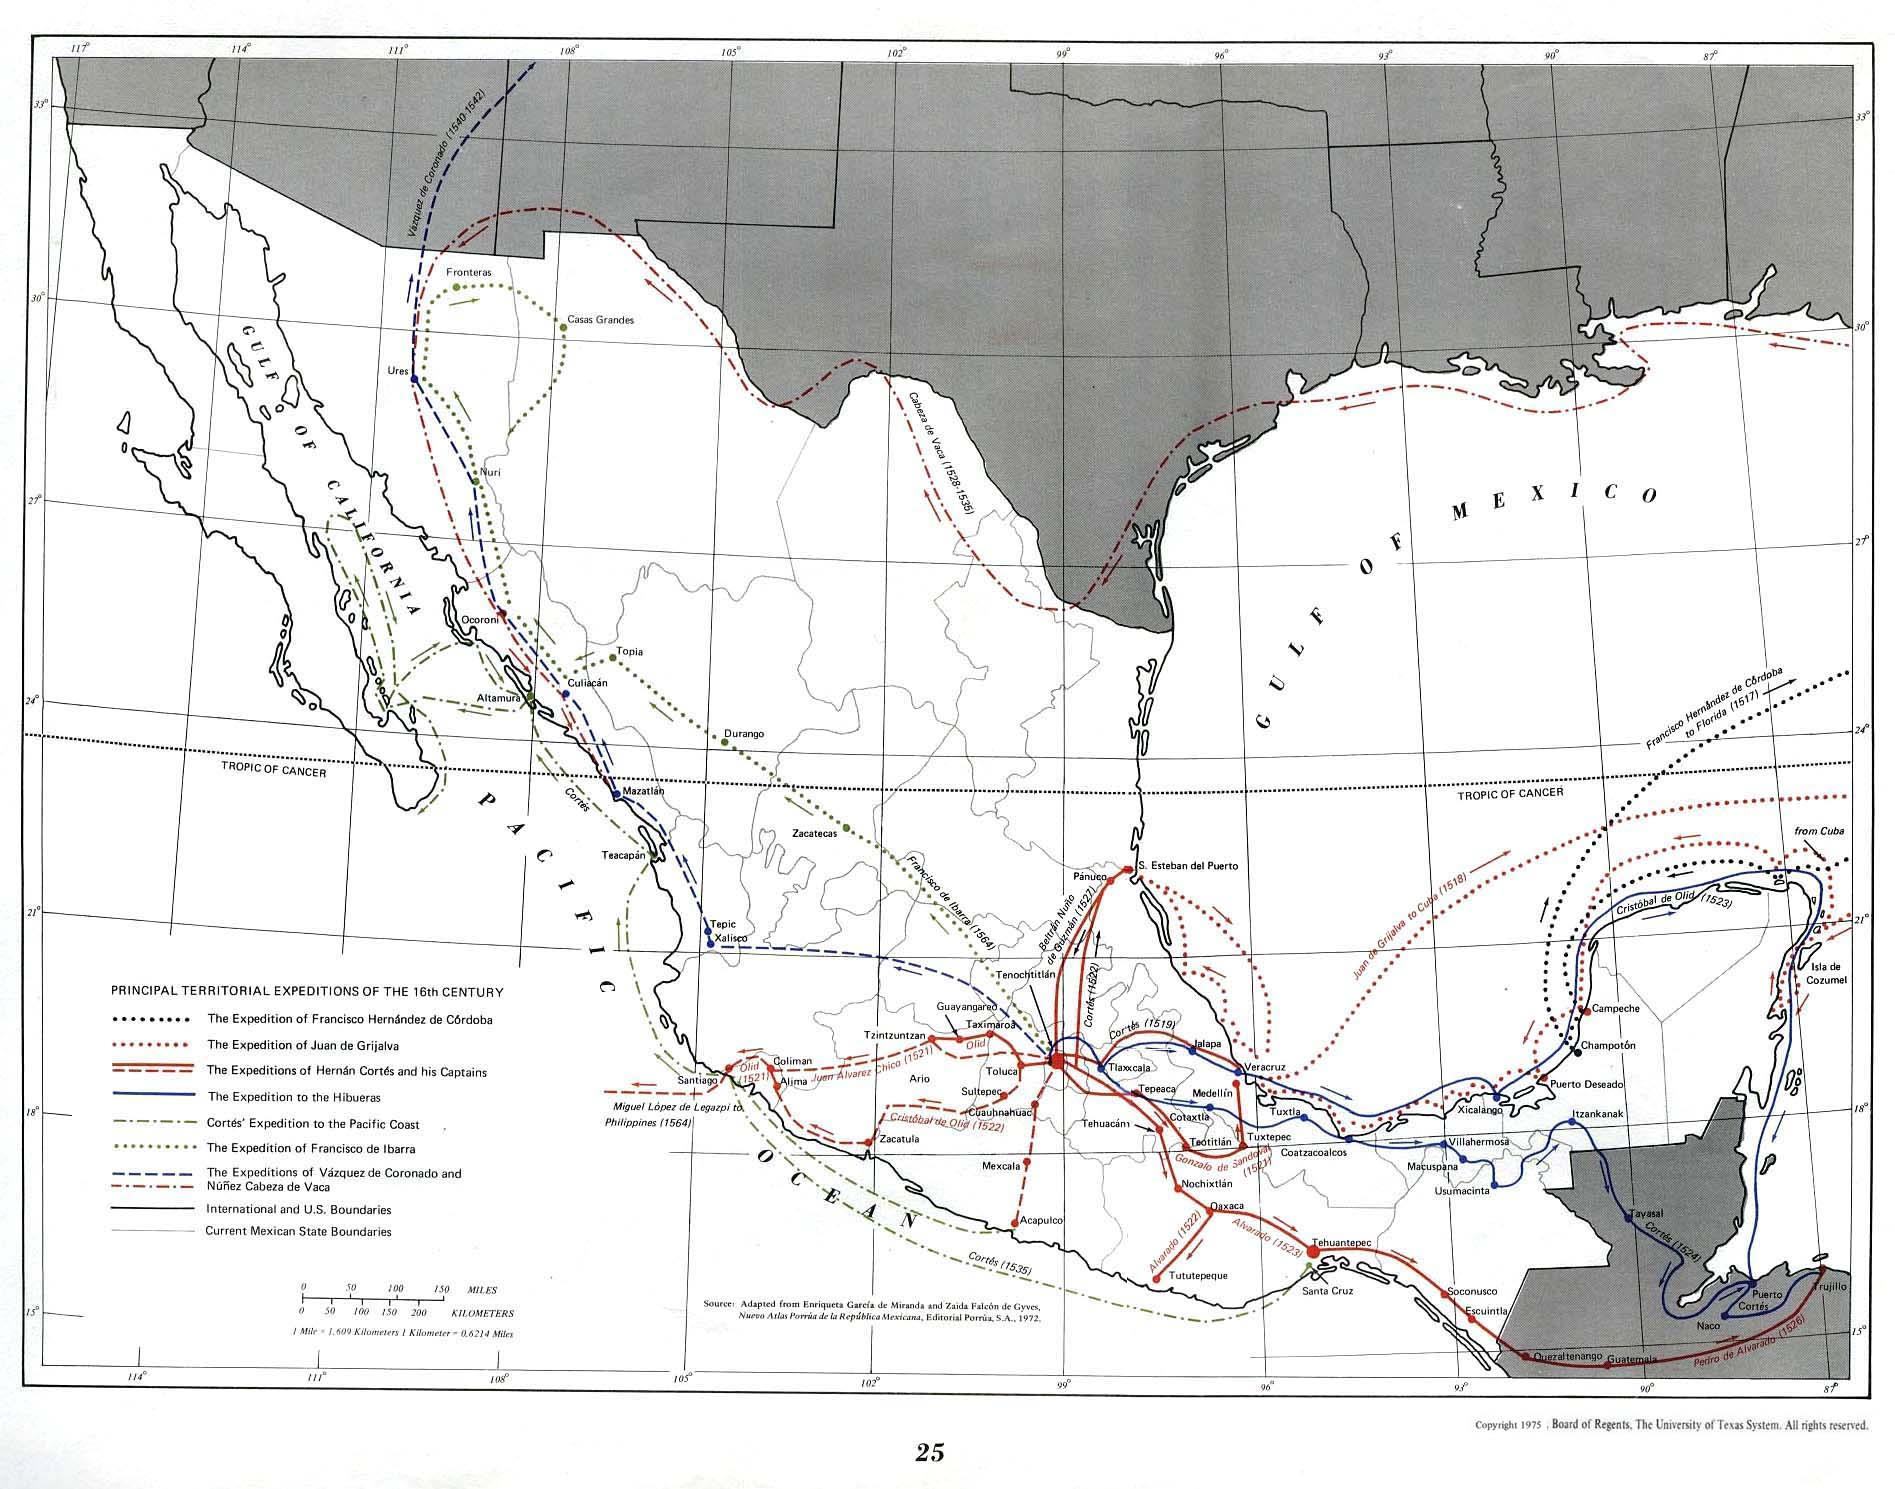 colonial mexico and independence colonisation – Map of Mexico 1821